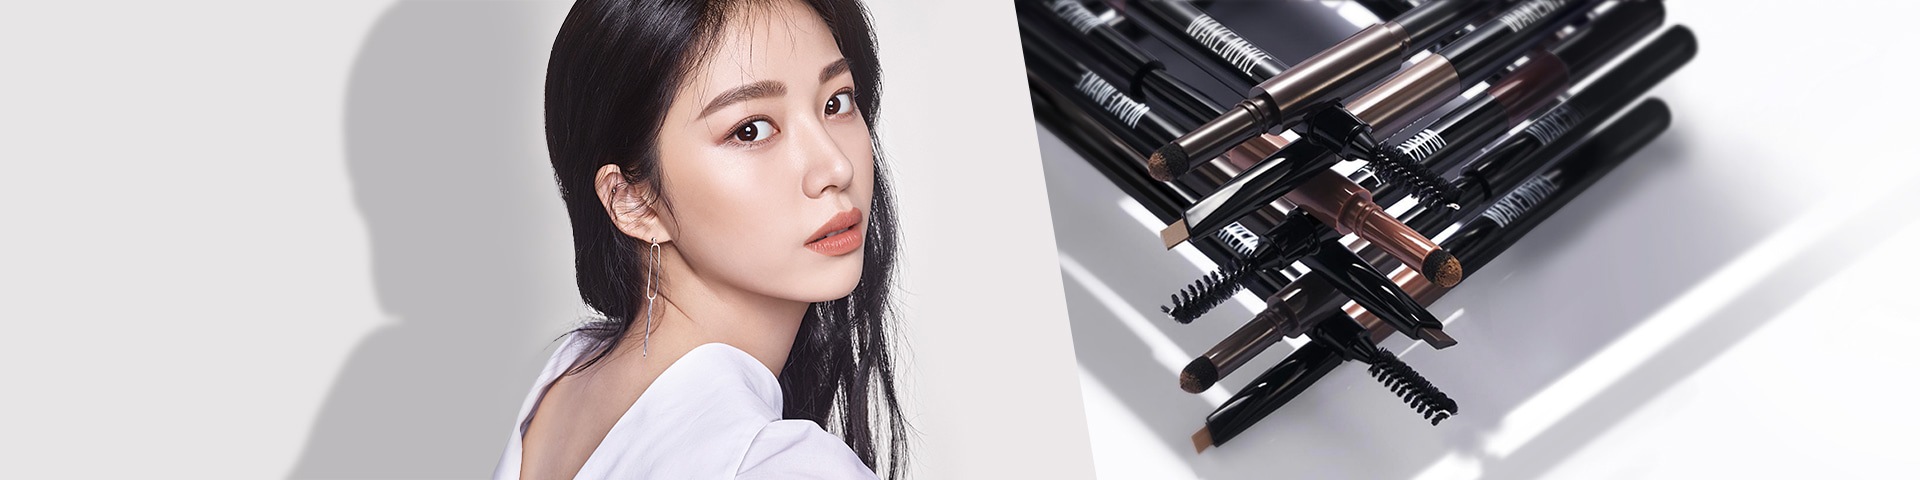 POWDER JET DUAL BROW 3-in-1 brow combining pencil, powder, and brush that has the delicacy of a pencil and the natural expression of powder